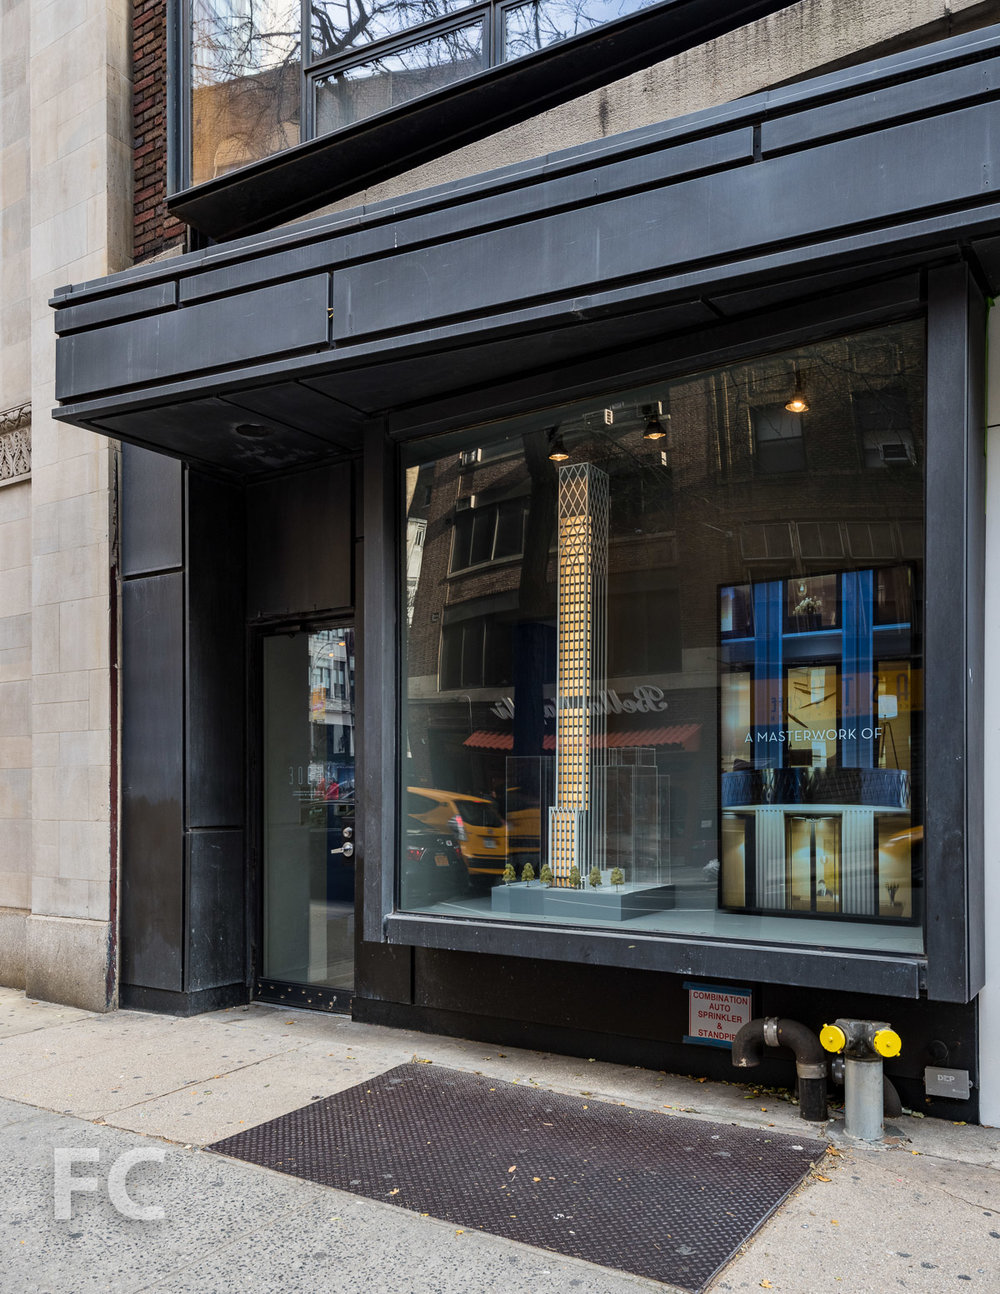 Sales gallery storefront at 127 Madison Avenue.